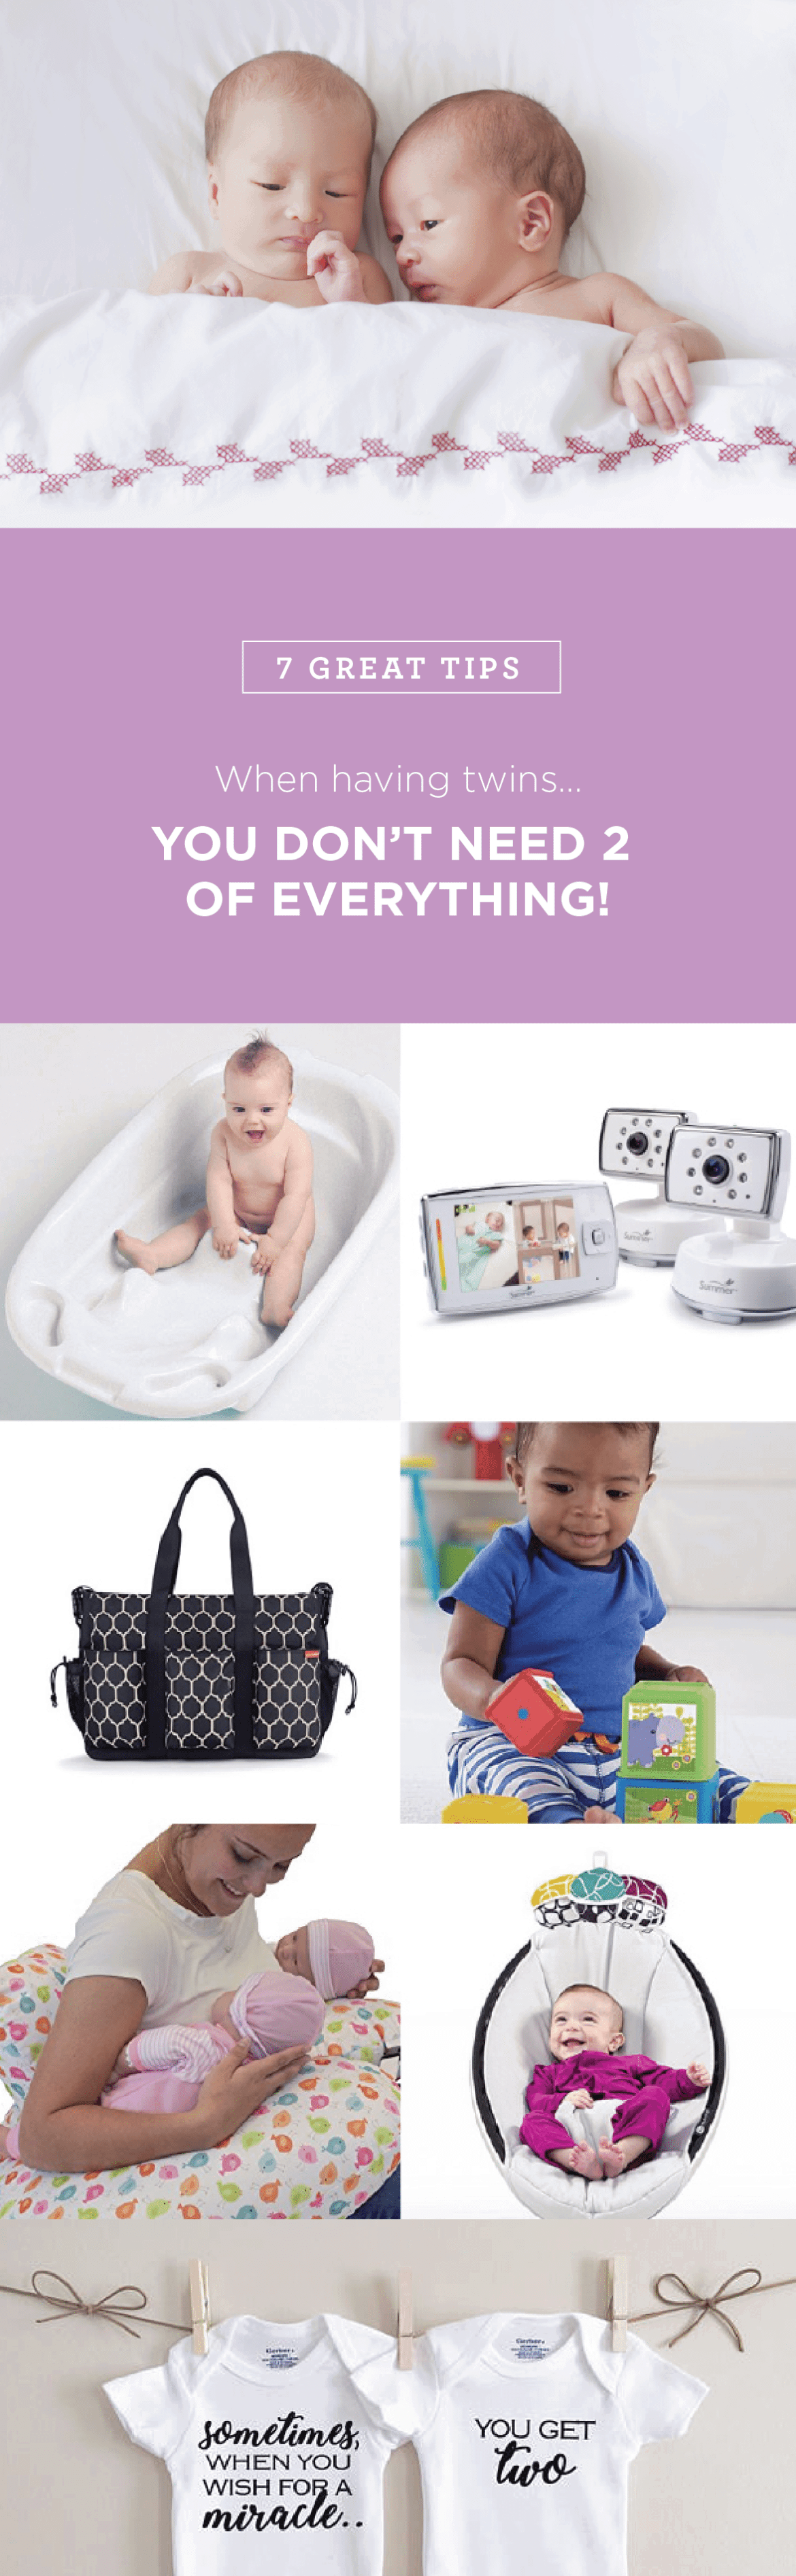 Preparing for twins is a big task, but you don't need to double your shopping list. Here's what you just need one of.